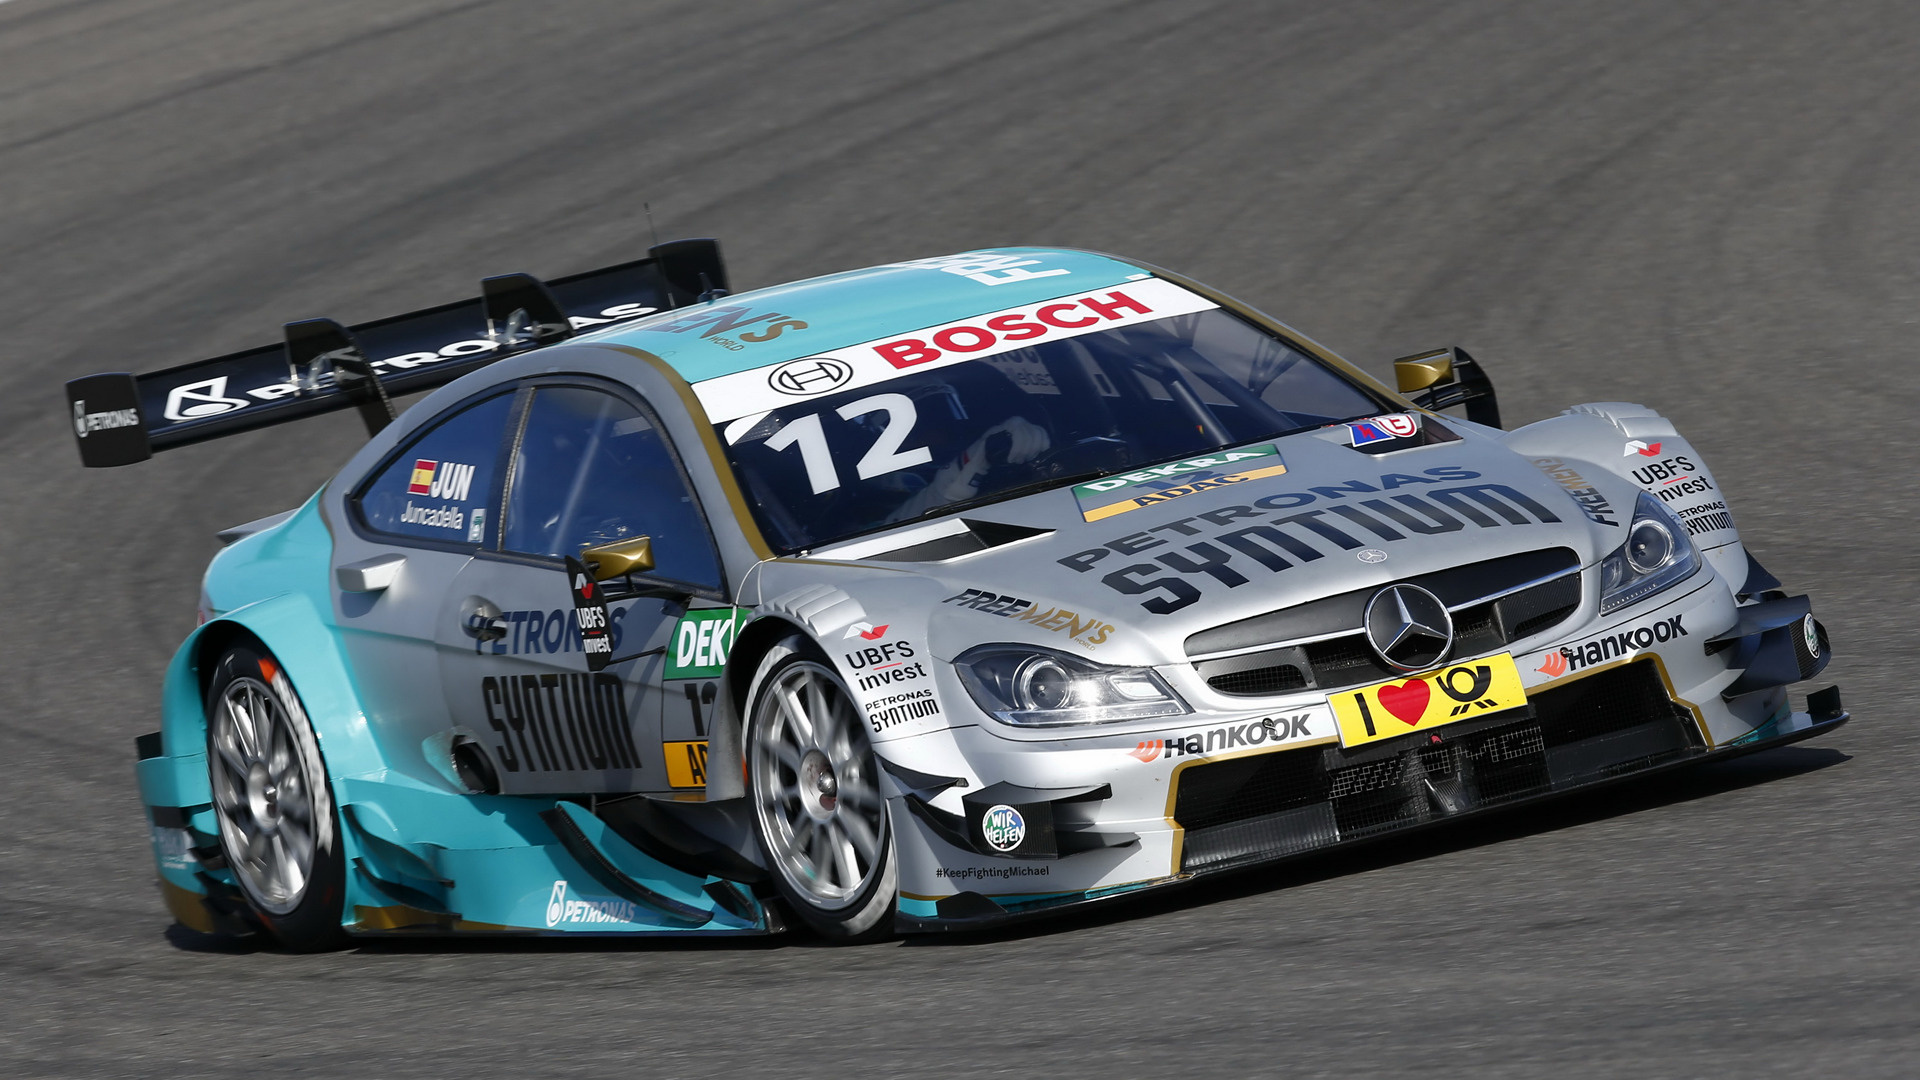 2015 Mercedes Benz C 63 Amg Dtm Wallpapers And Hd Images